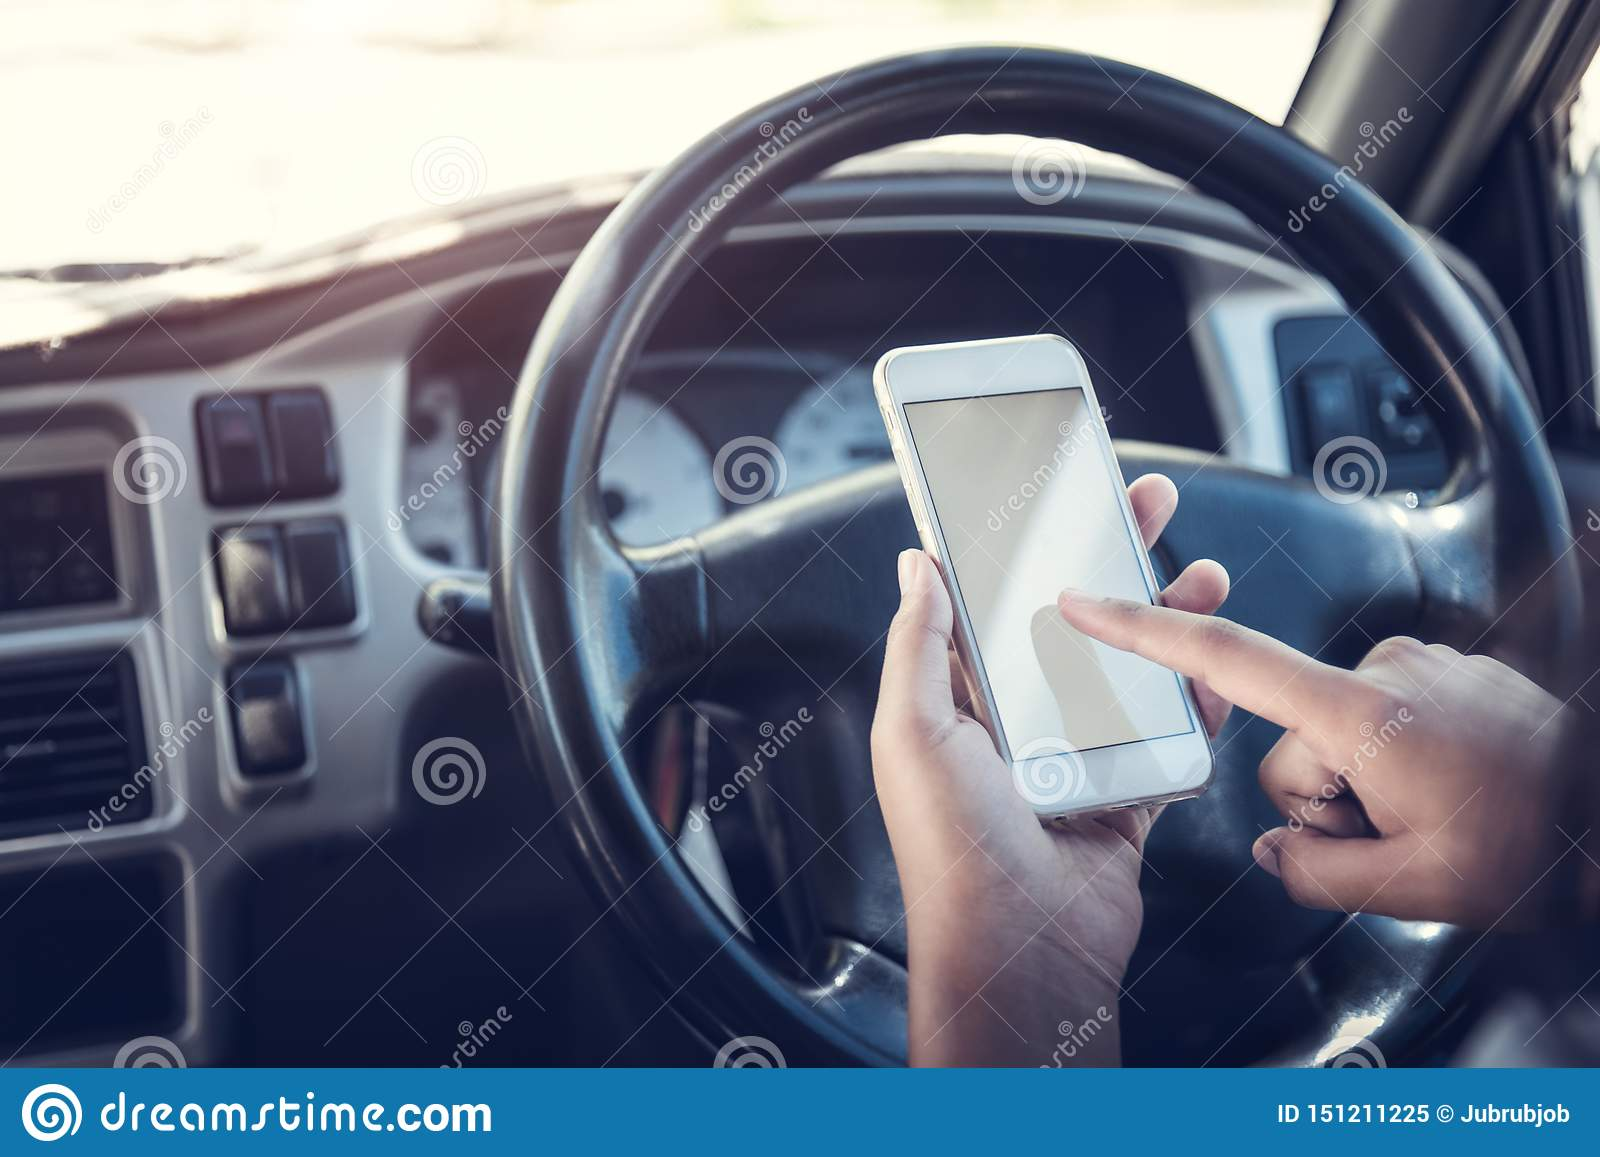 Asian woman talk by mobile calling texting and looking on a cellular phone while sitting in her car, driving under the influence,